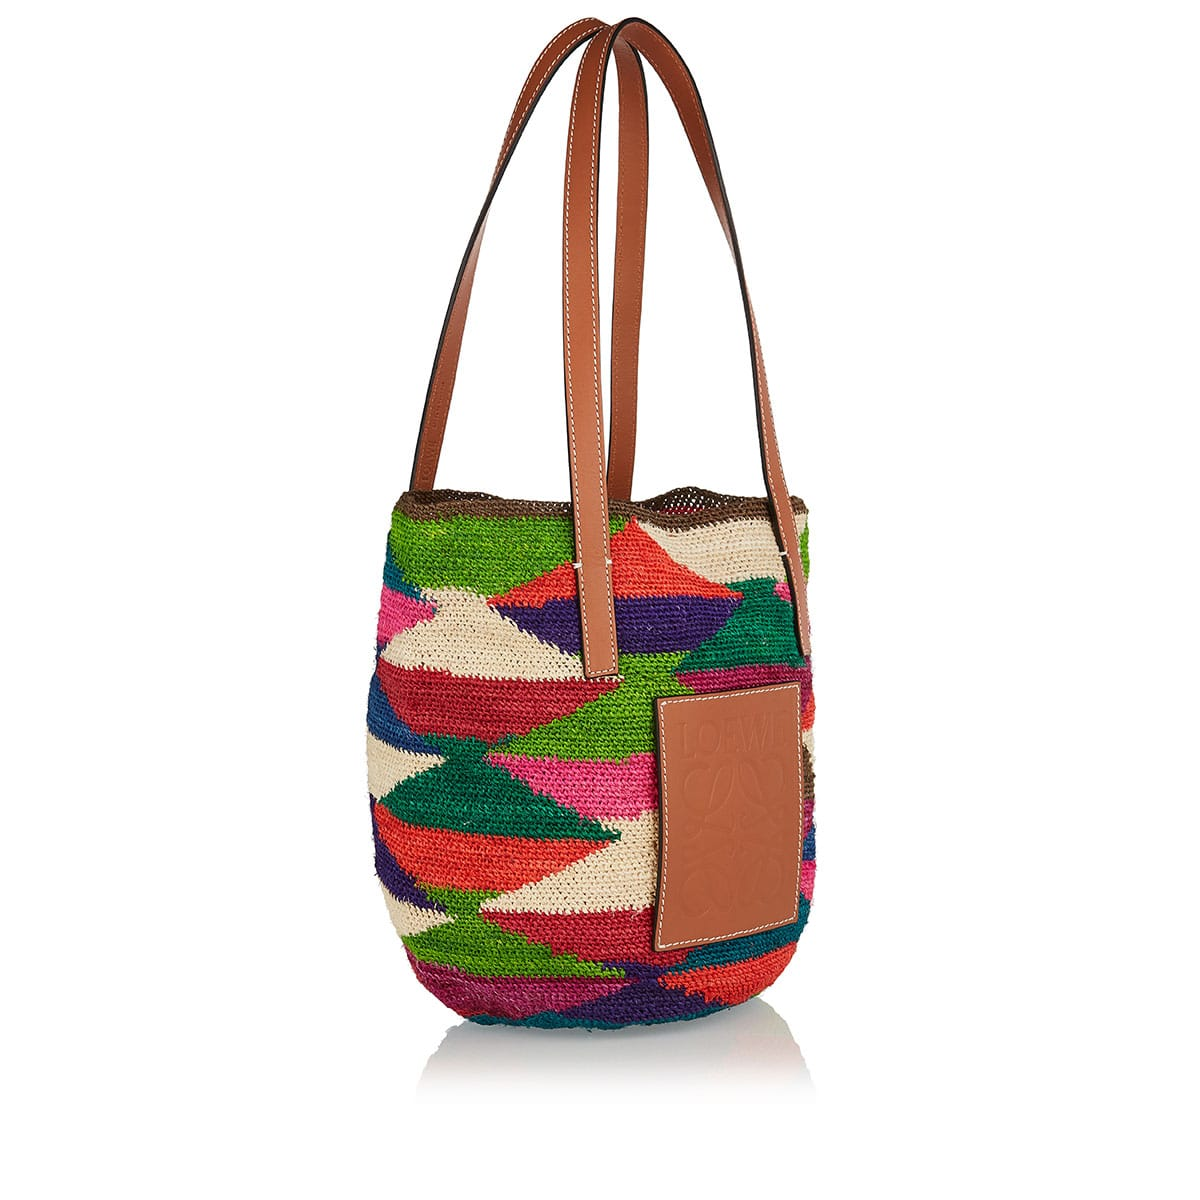 Shigra sisal and leather tote